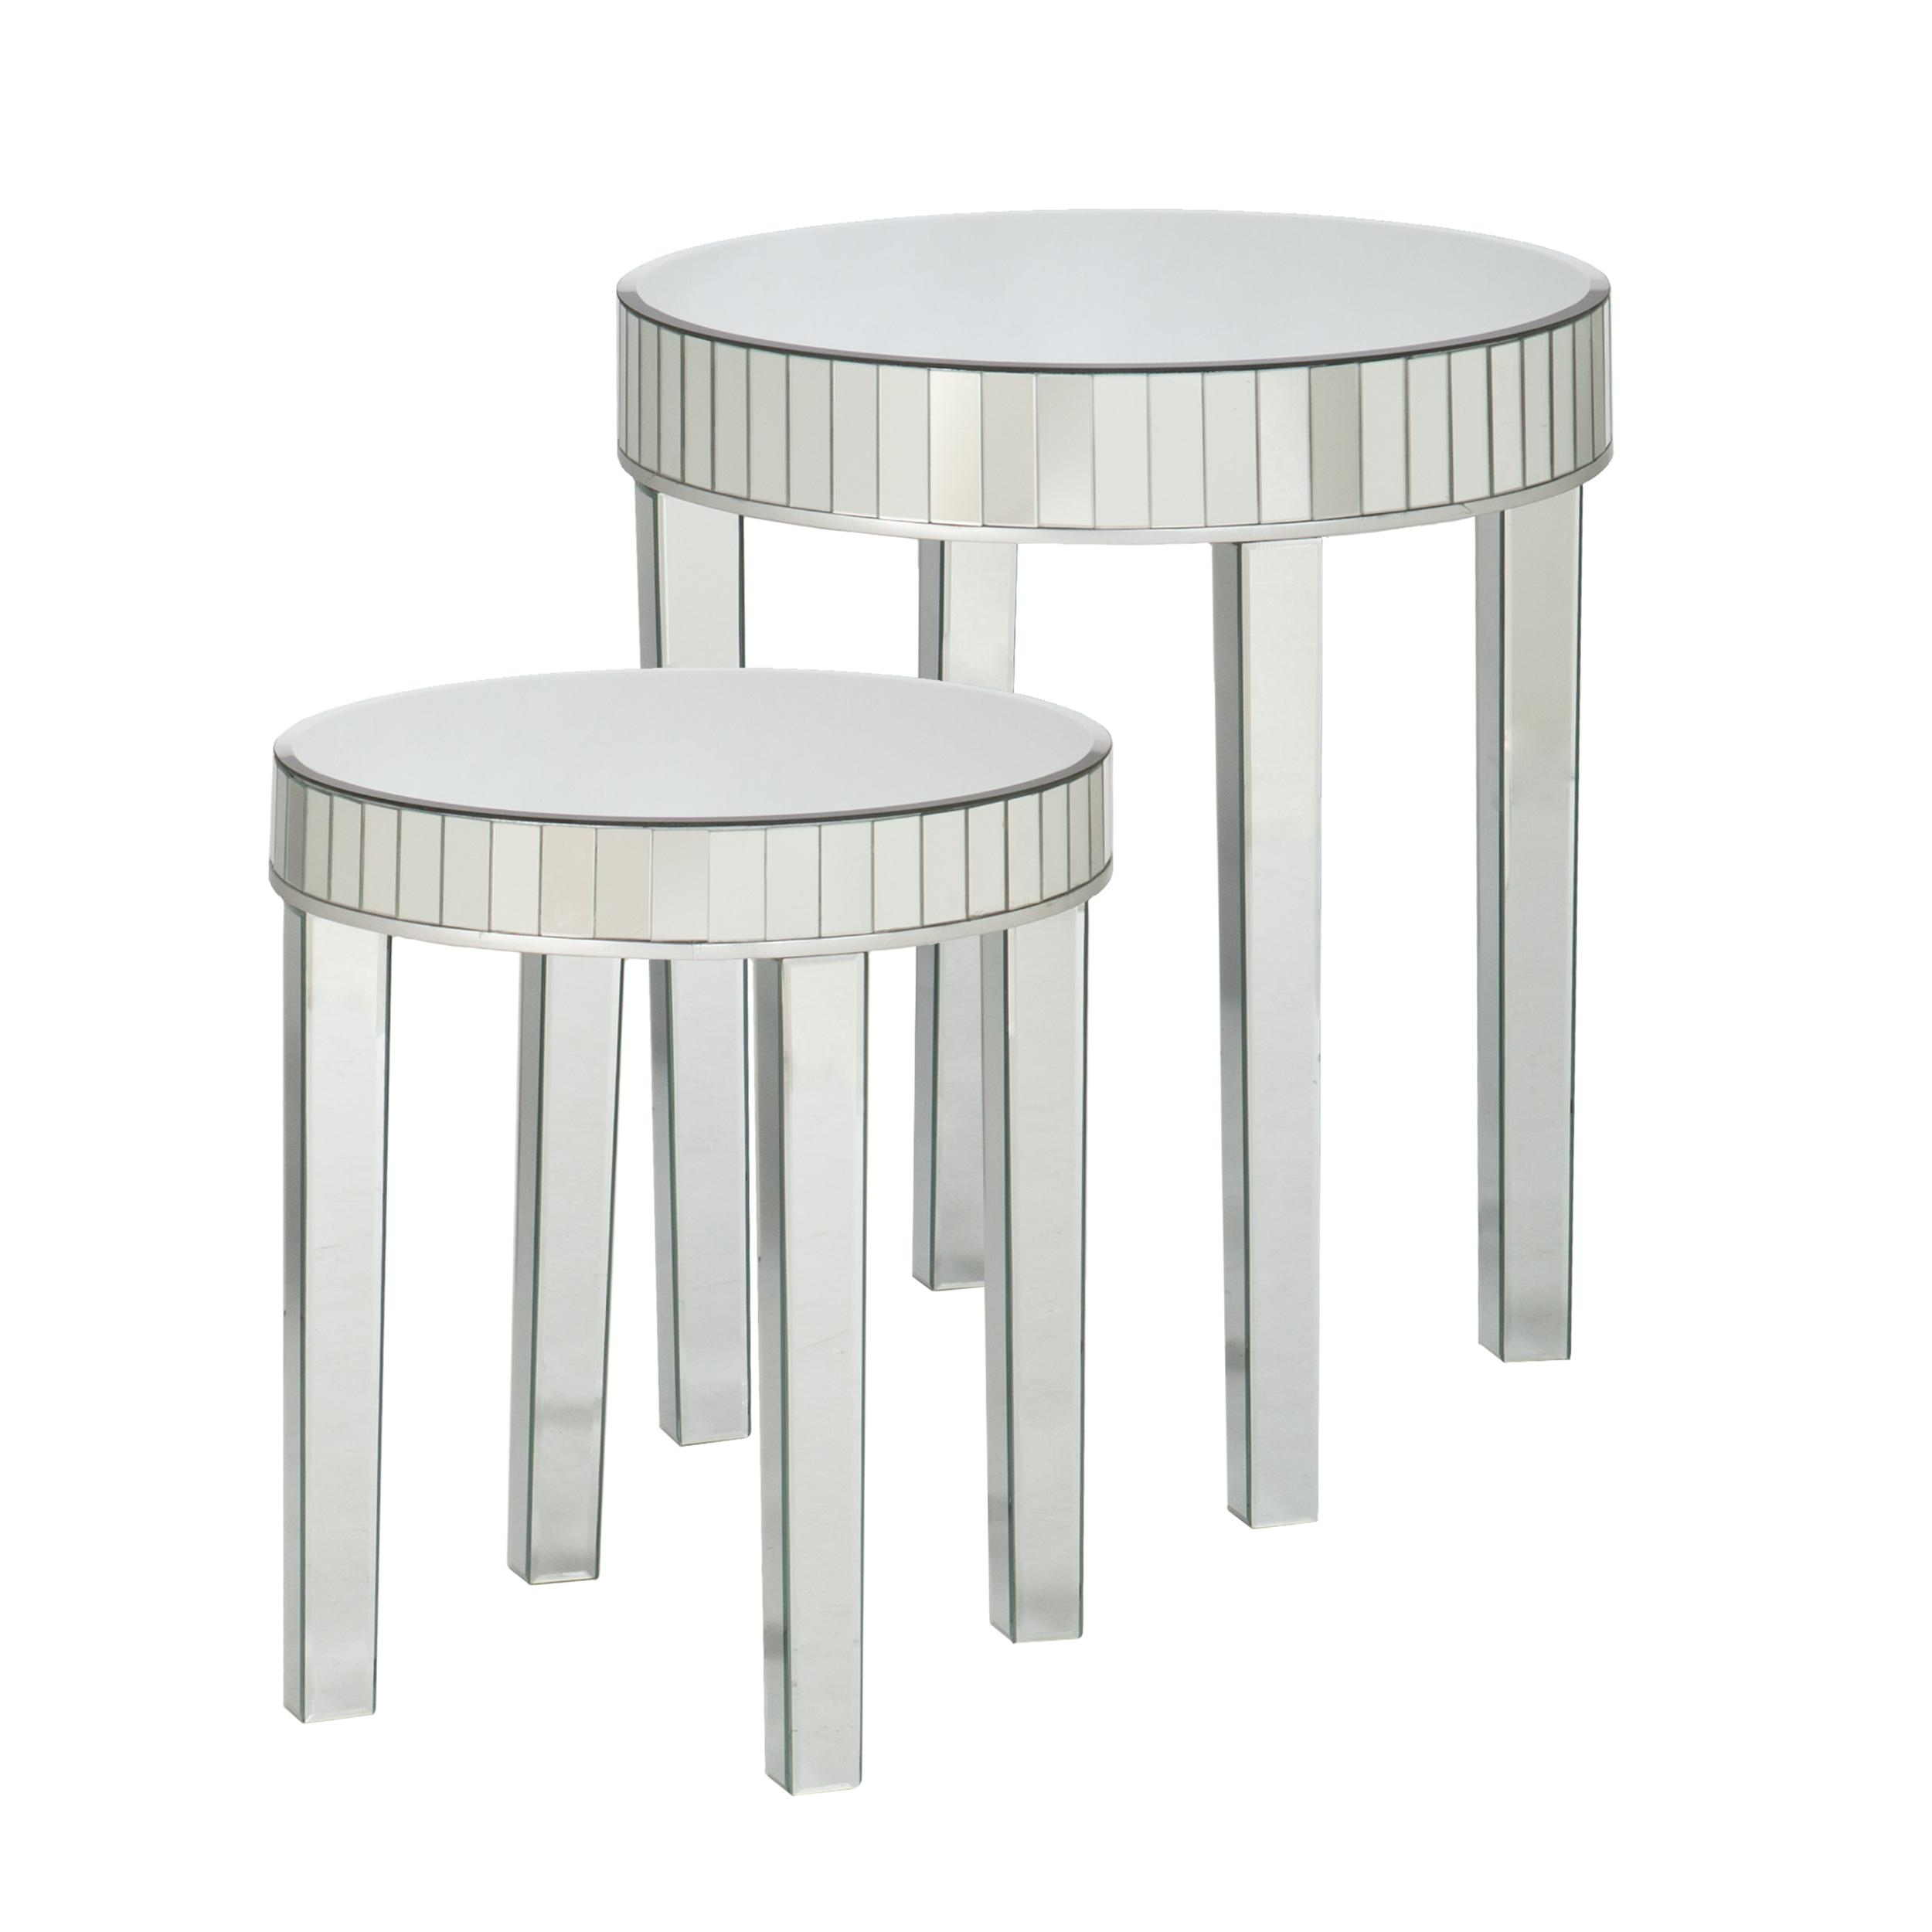 Round Mirrored Nesting Table 2pc Set Kitchen Dining